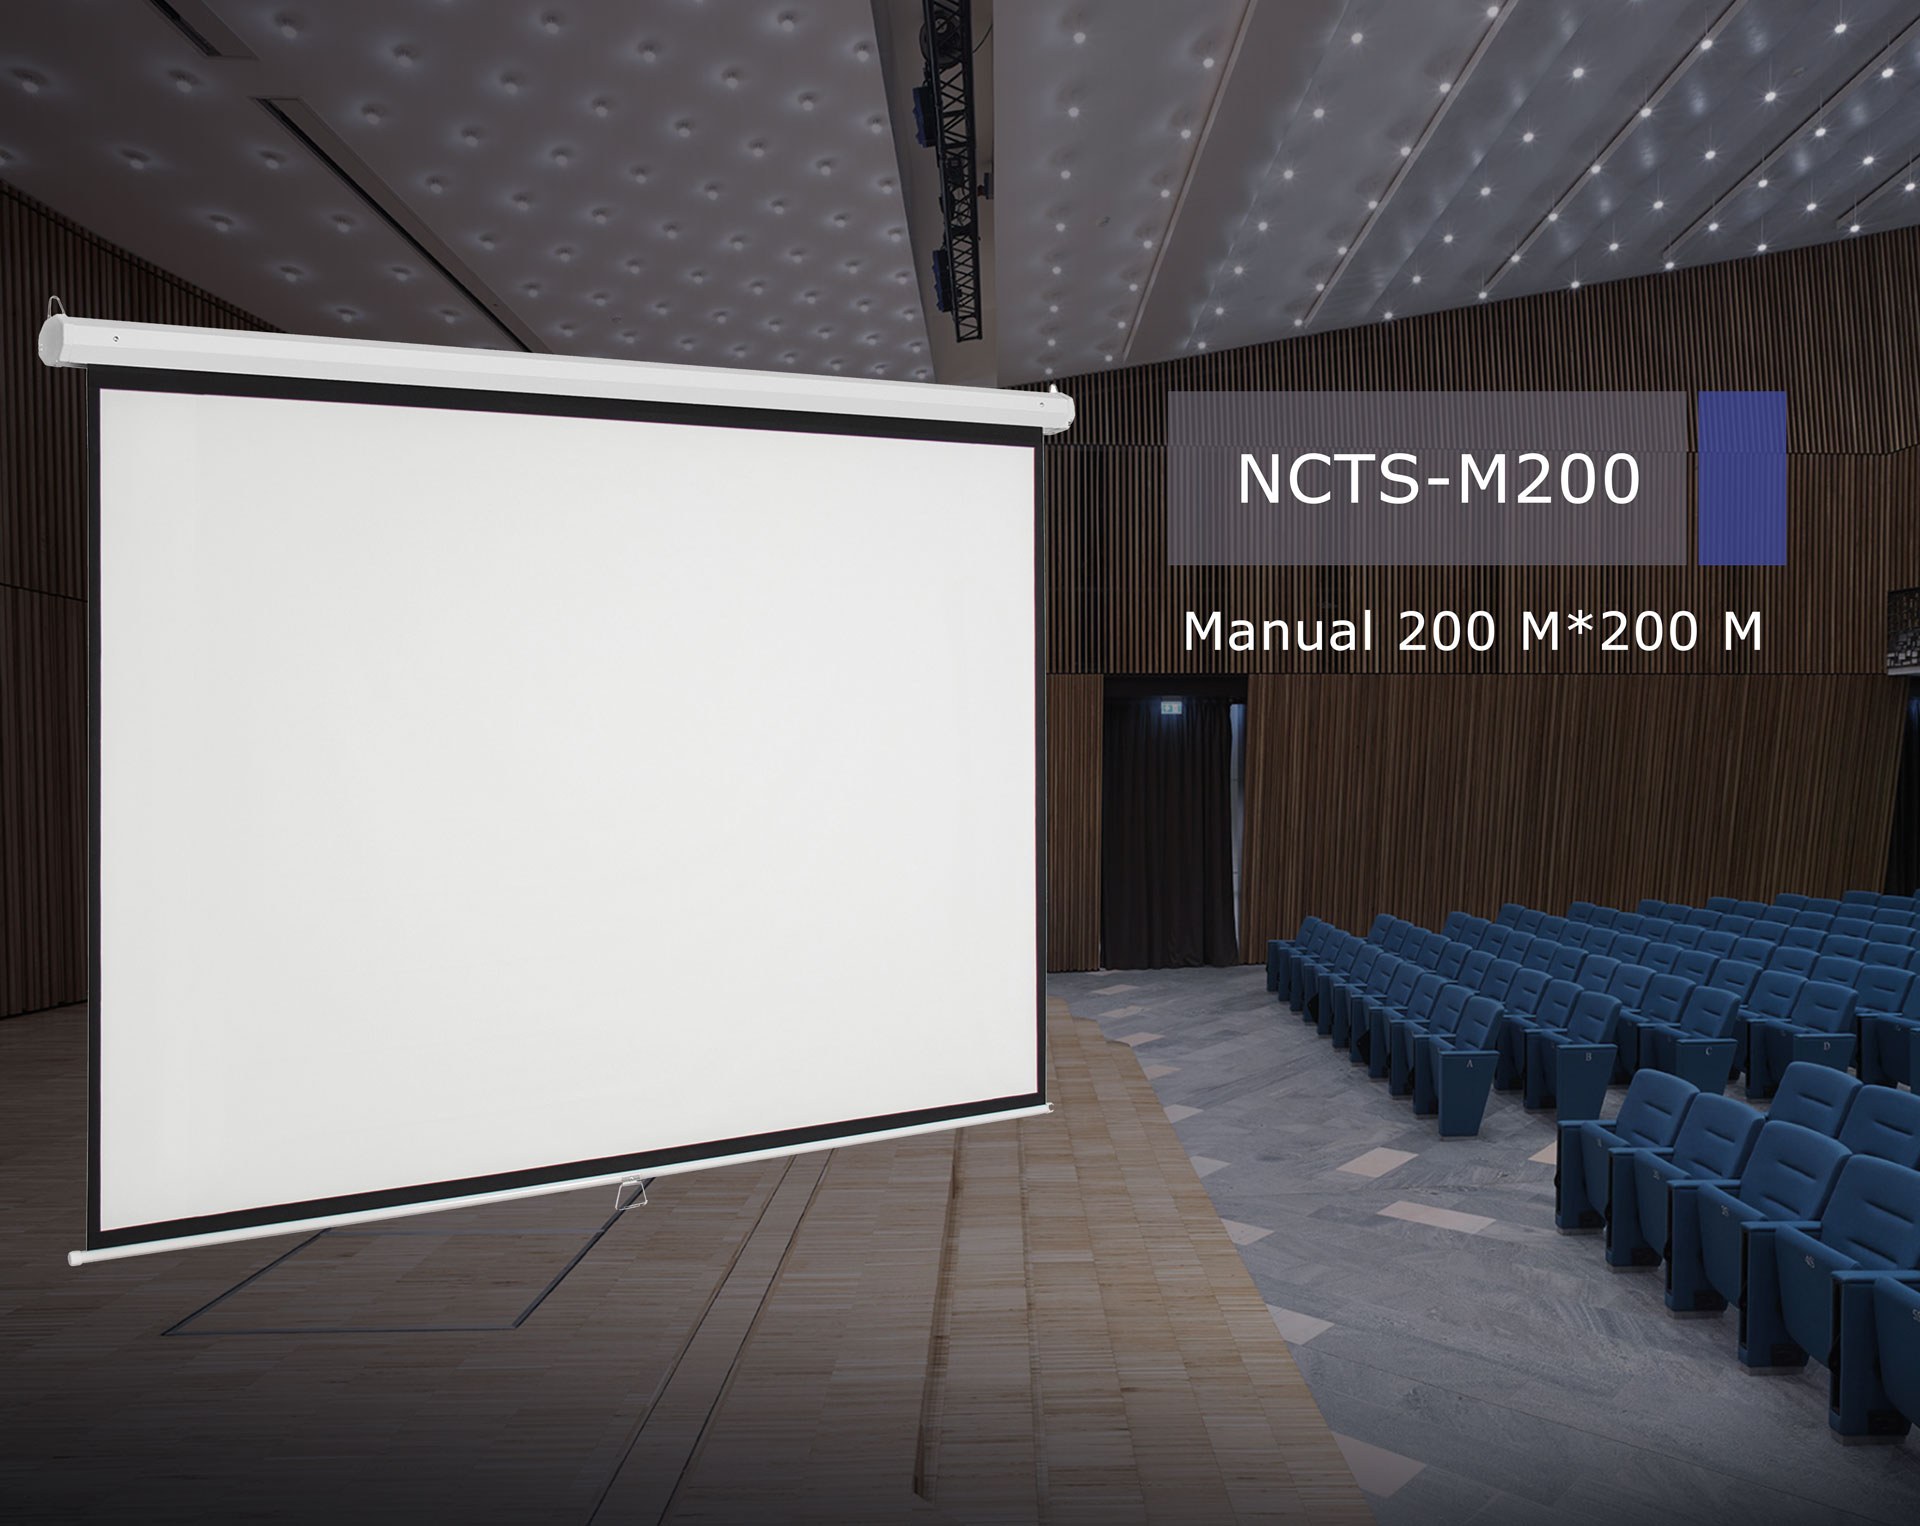 NCTS MANUAL 2Mx2M